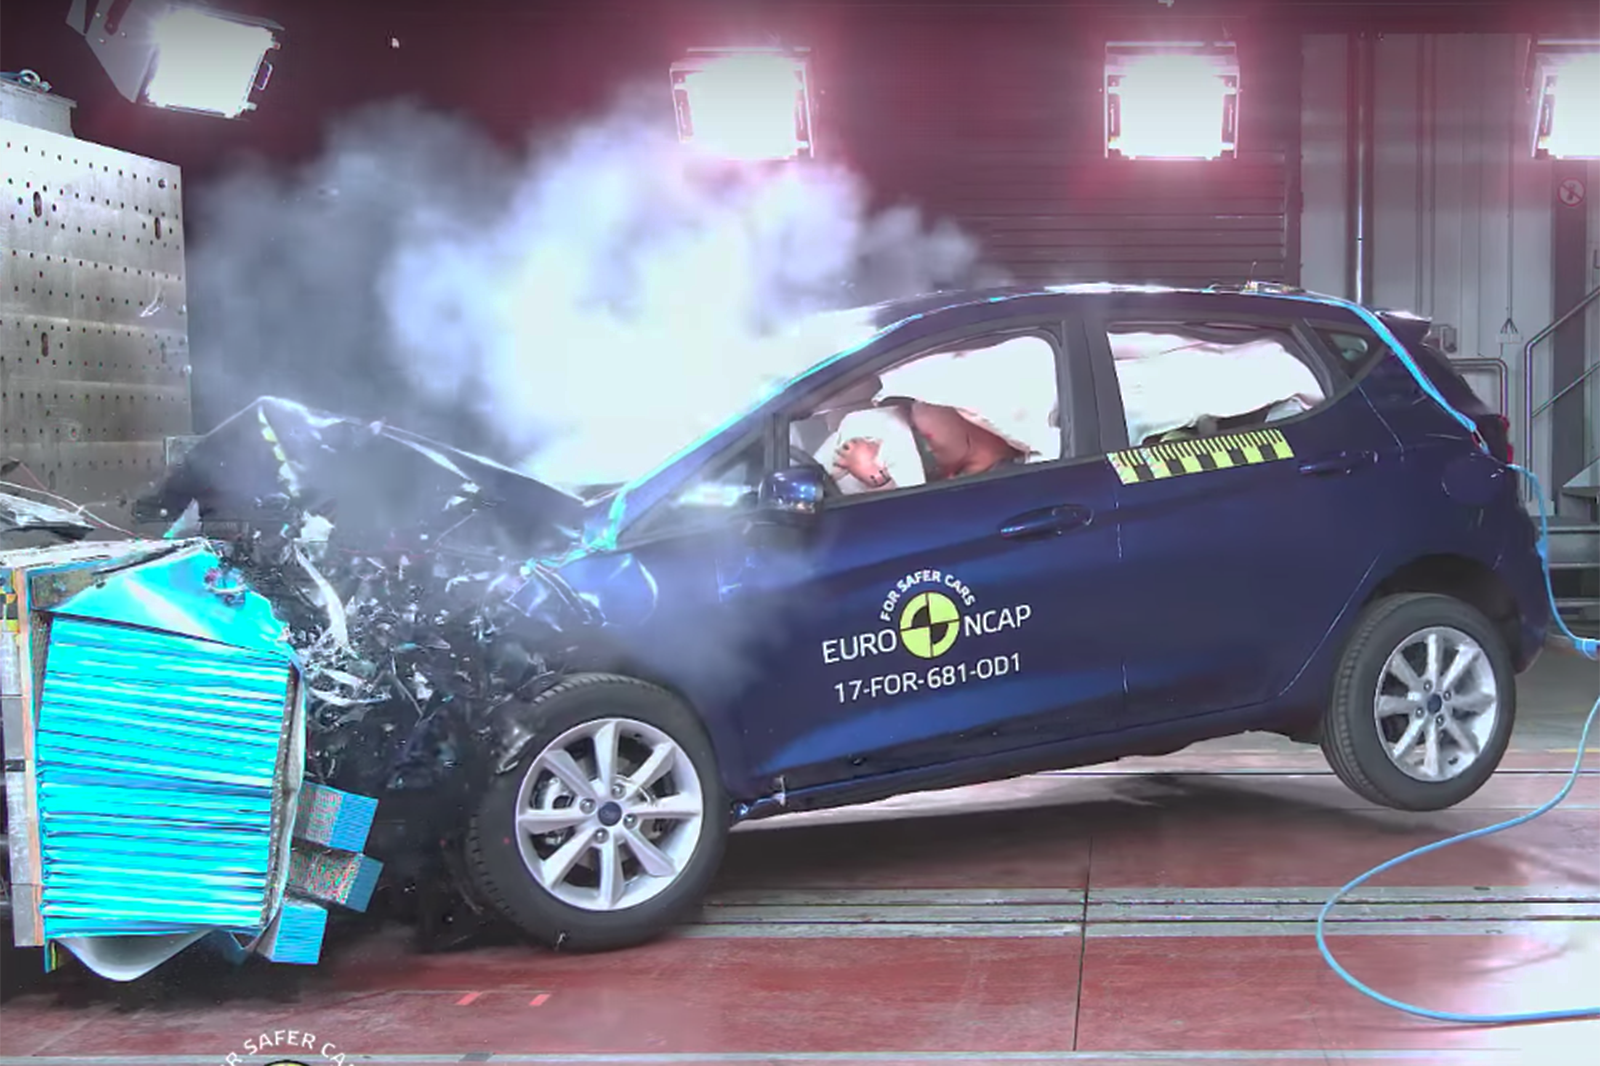 Latest Euro Ncap Ratings Revealed Fiesta Grandland X Koleos Achieve Five Stars Autocar